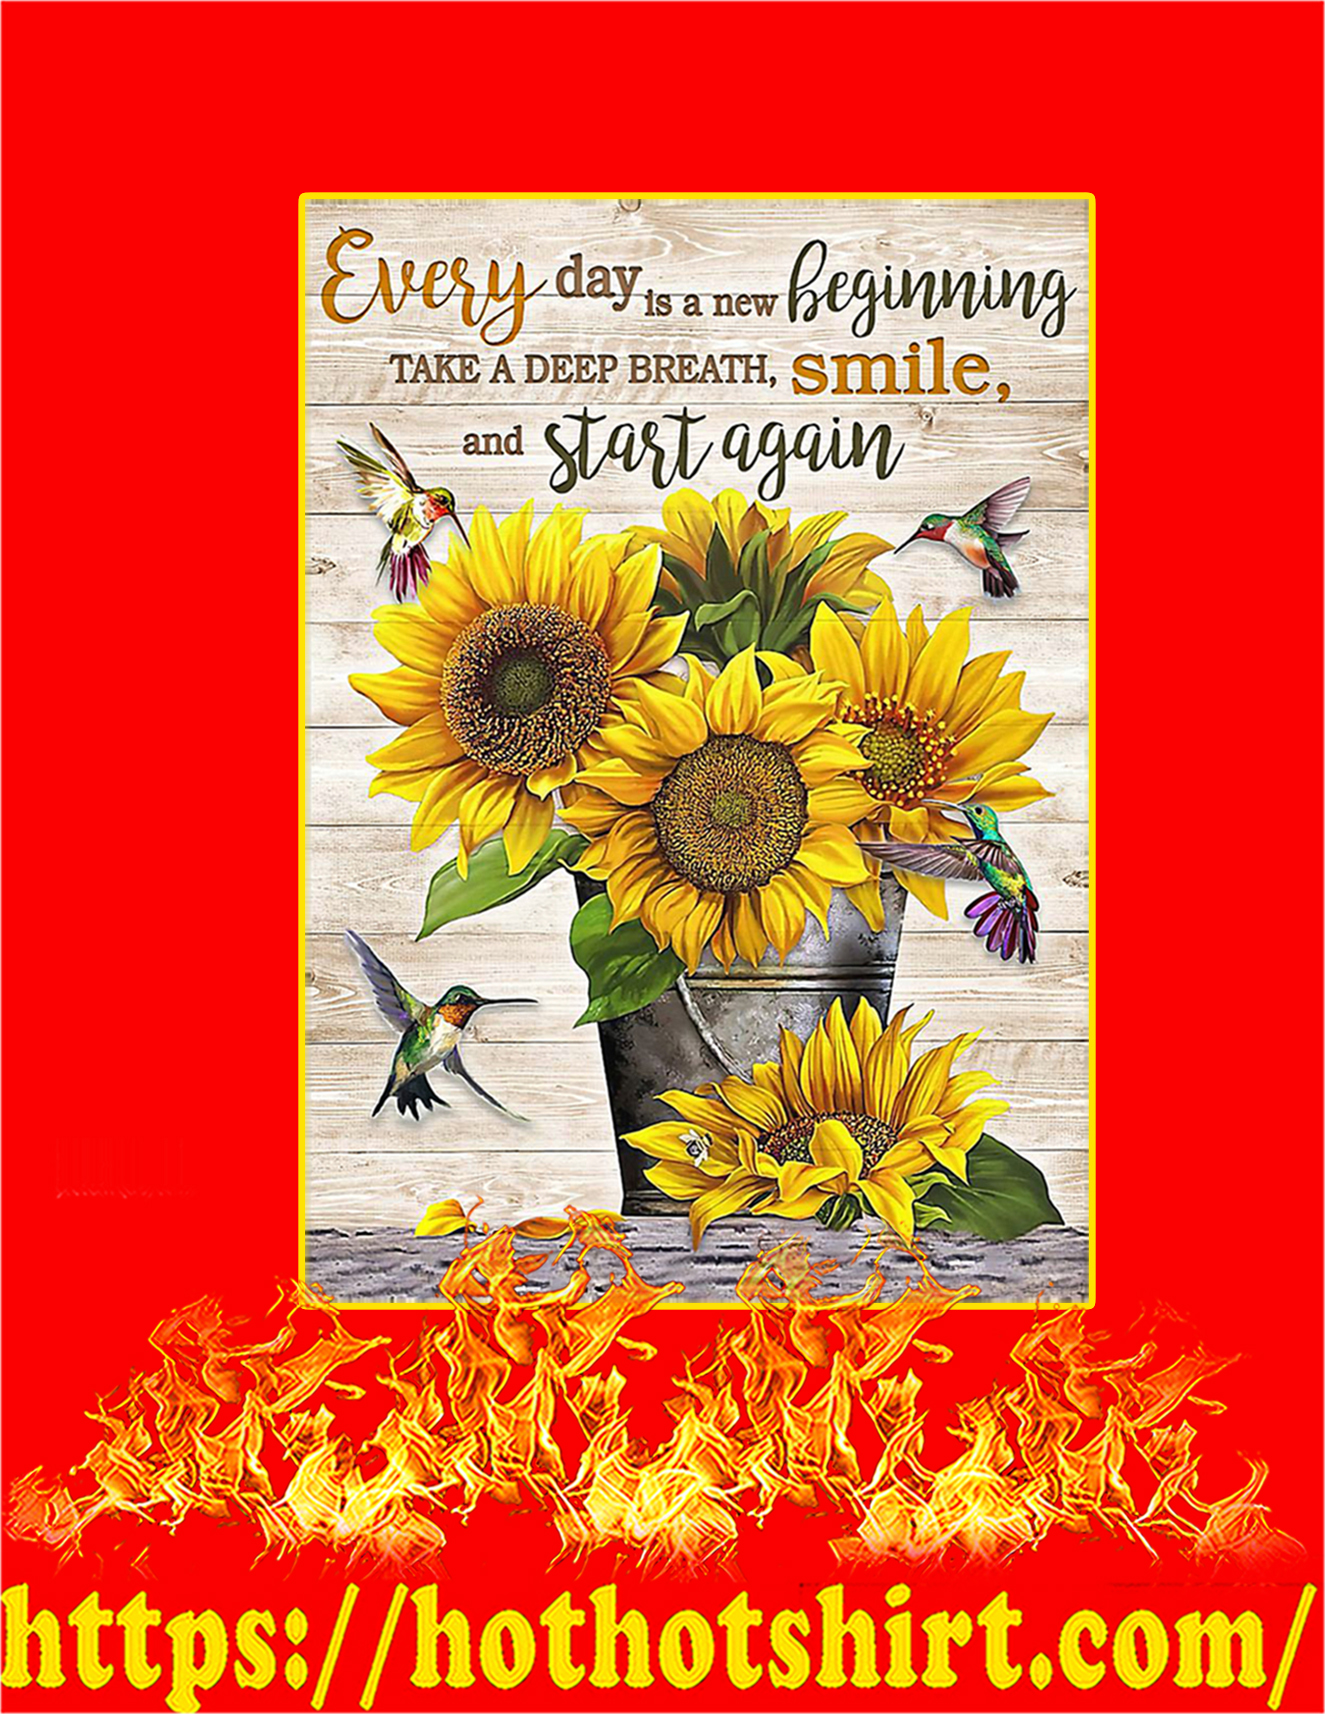 Sunflower Every day is a new beginning poster - A3